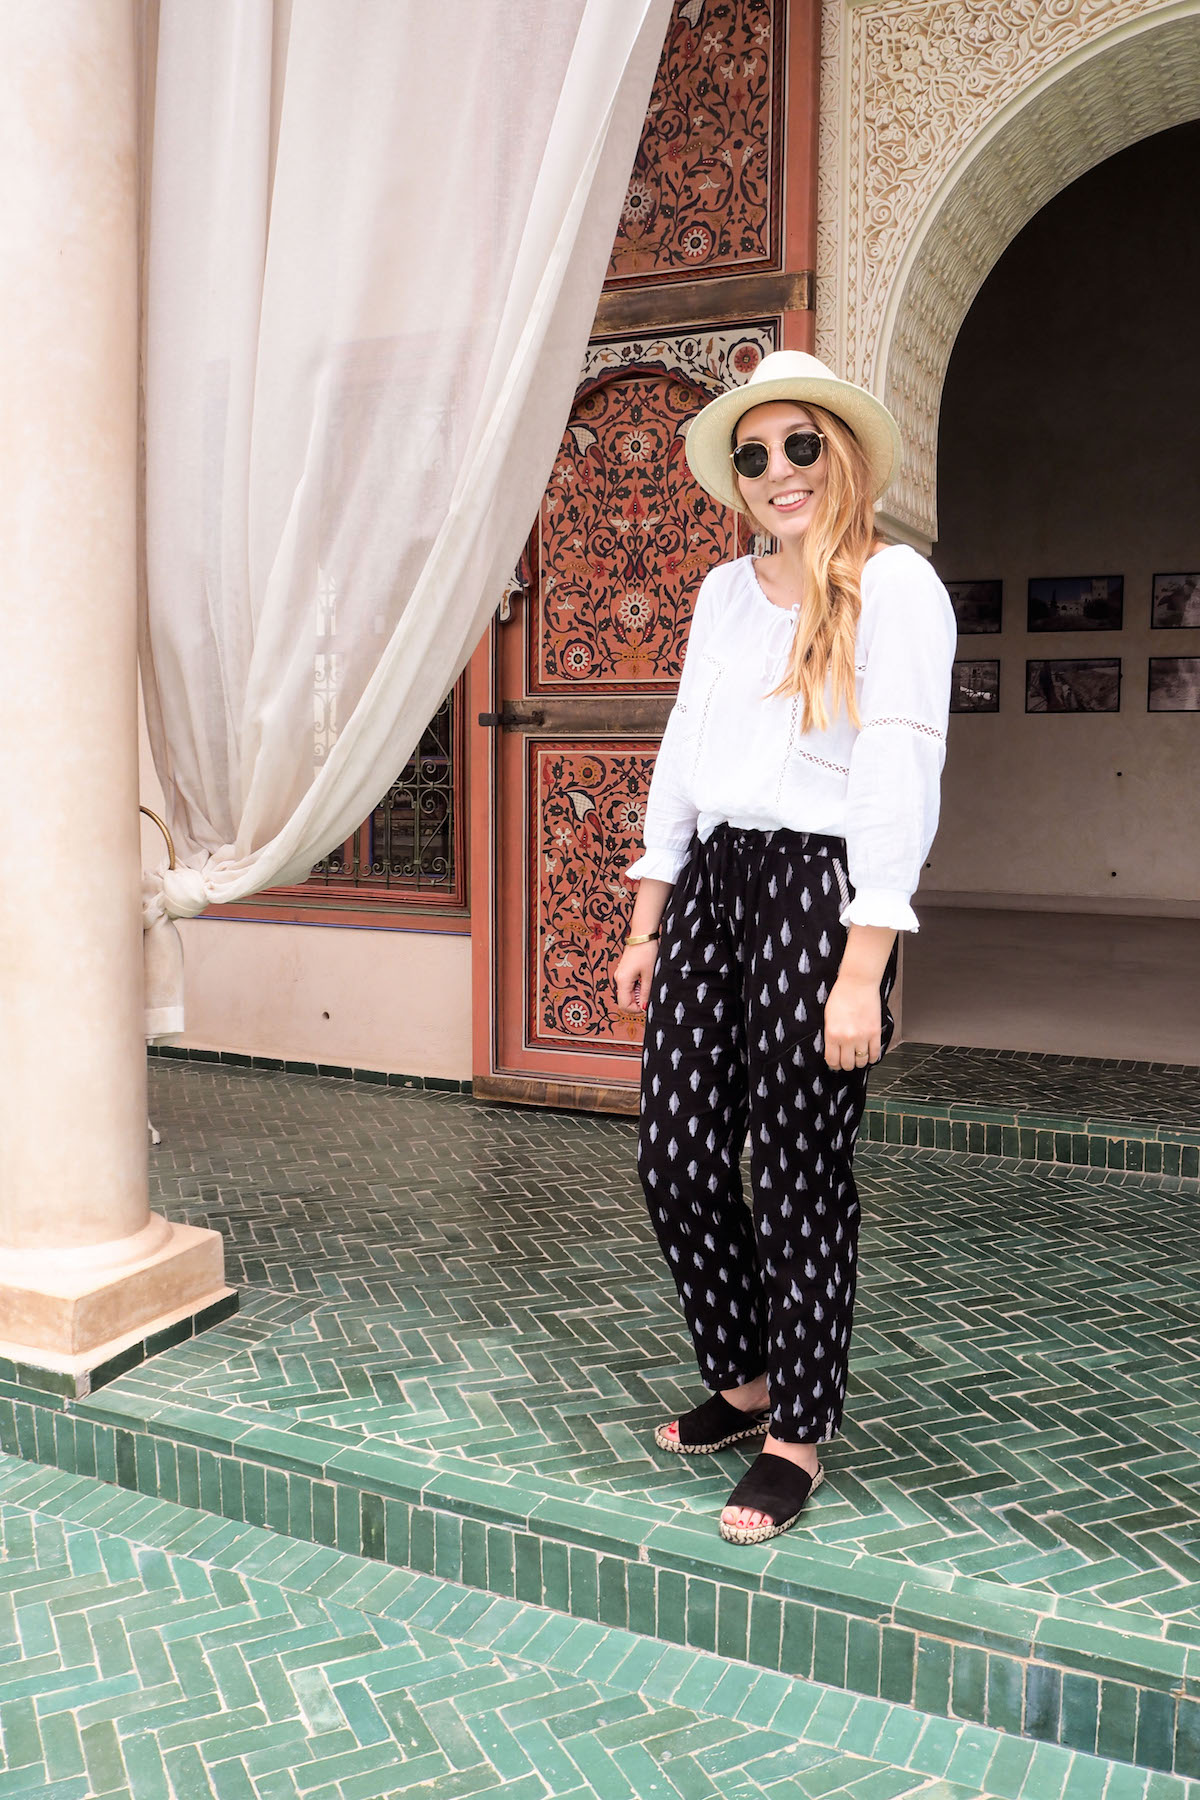 Kirei ikat trousers, urban outfitters white blouse, Gap hat, H&M black slides, Ray-Ban sunglasses | Wolf & Stag's Travel Guide to Marrakech, Morocco